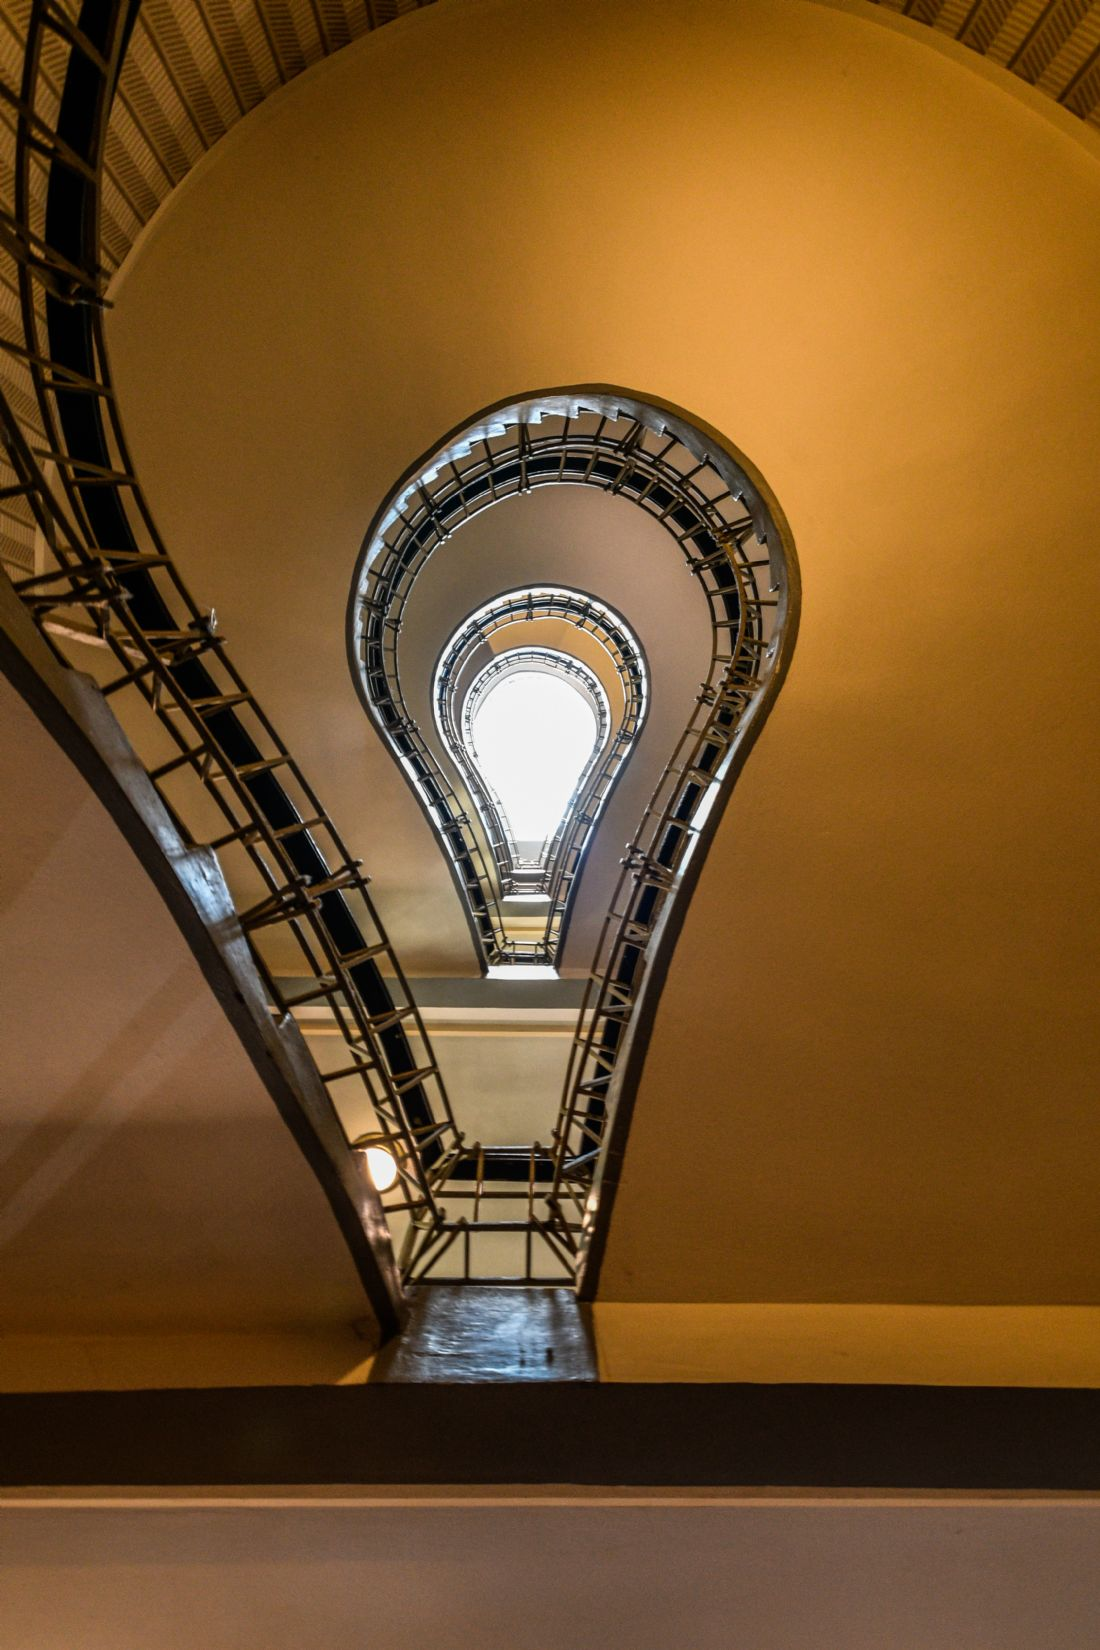 Mike Carroll | The Light Bulb Staircase